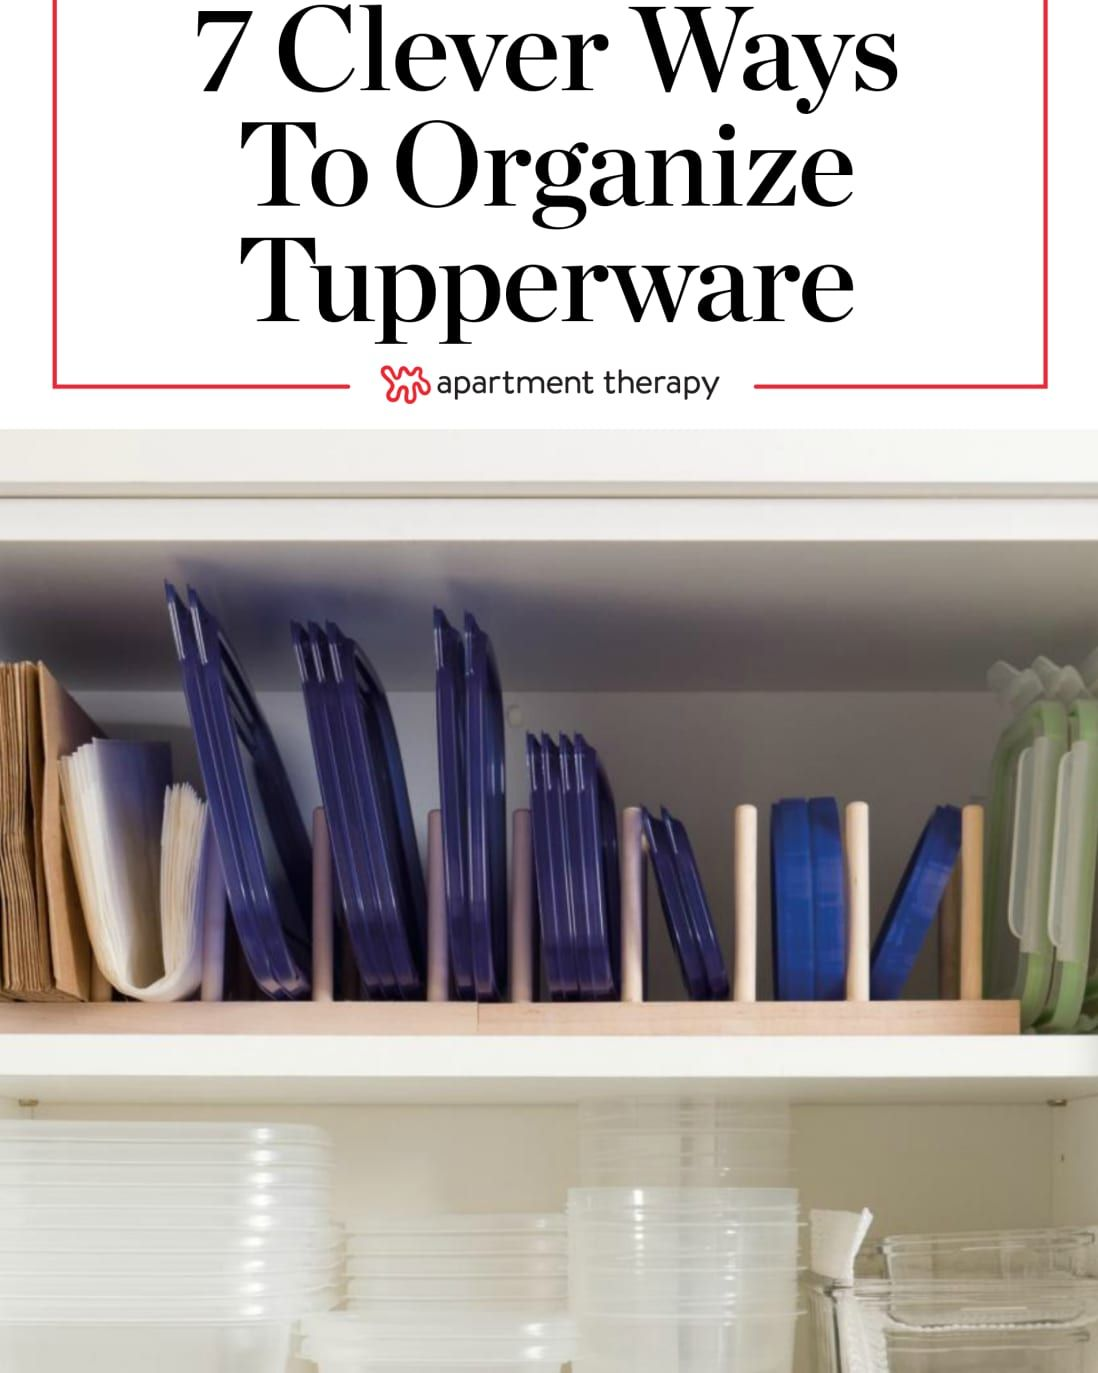 10 Clever Ways To Organize Tupperware And Food Storage Containers Tupperware Organizing Food Storage Organization Food Storage Containers Organization